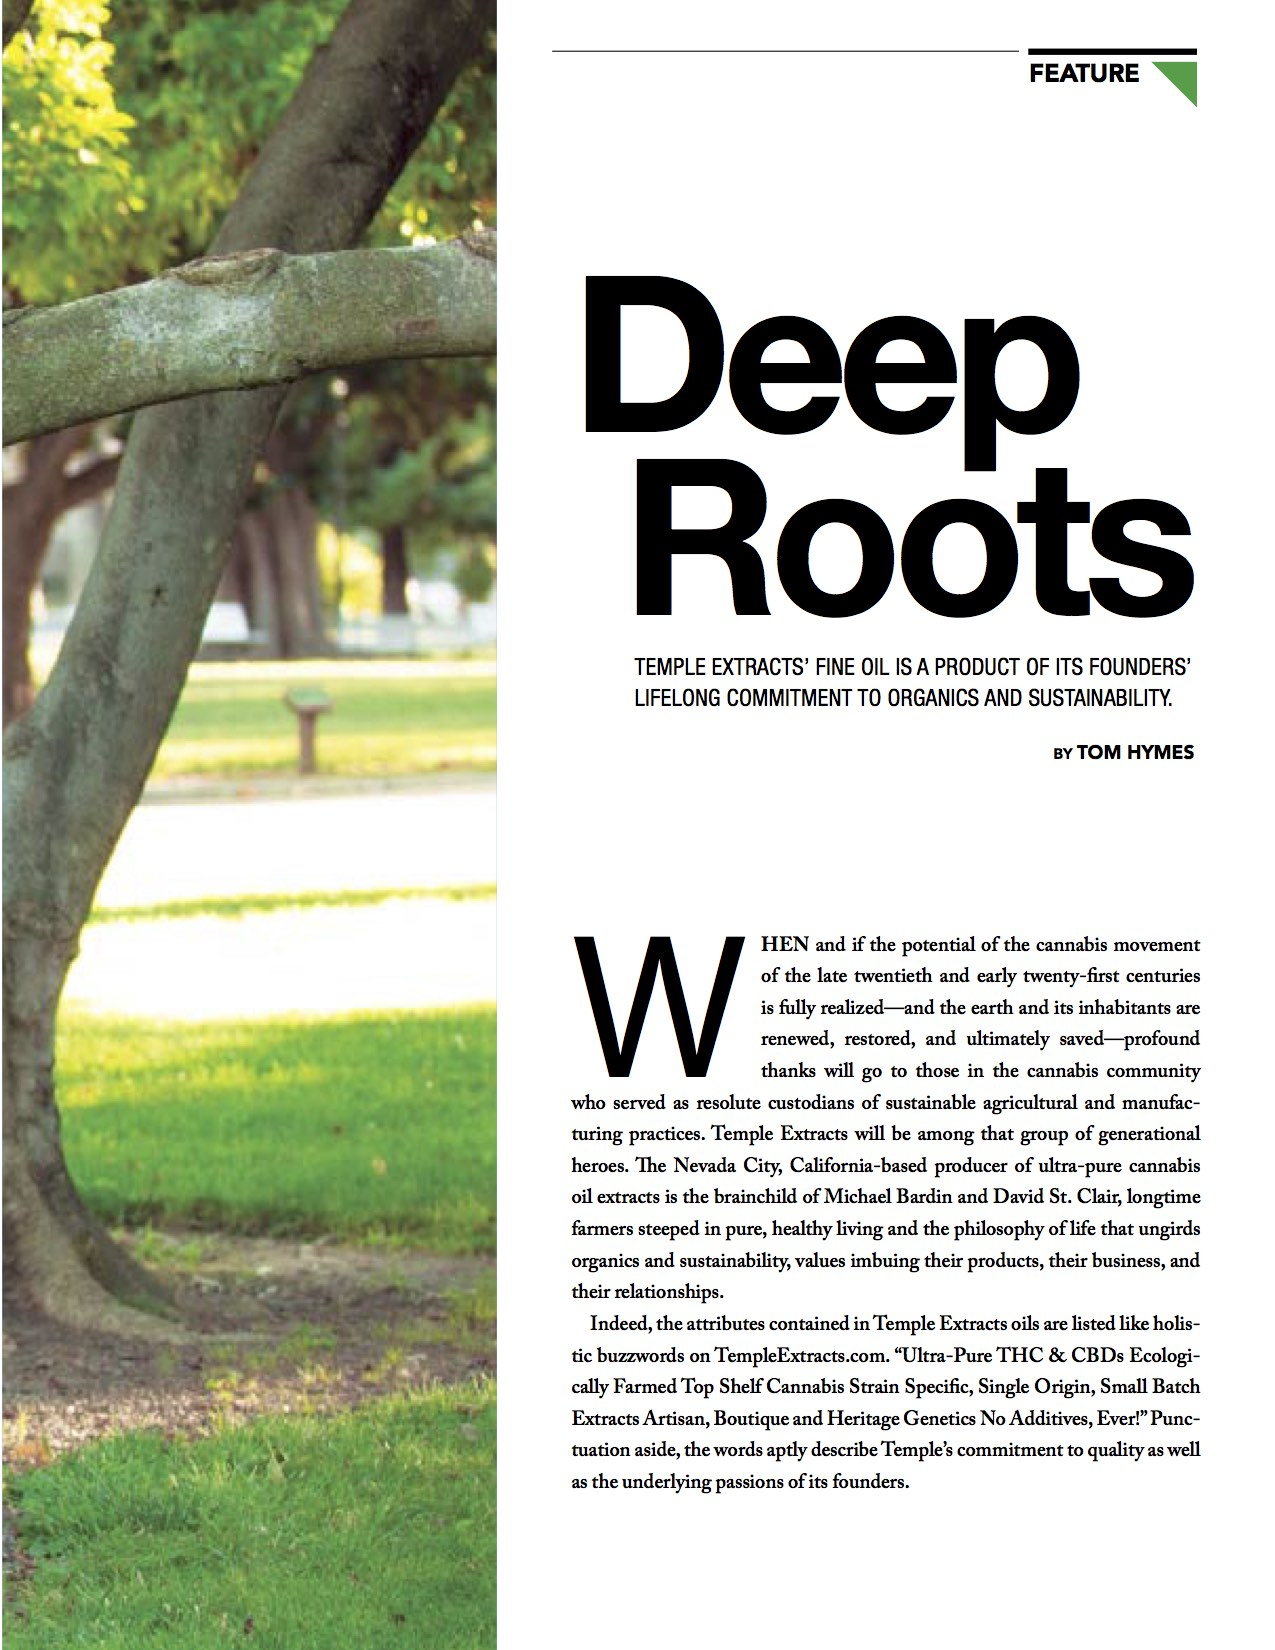 MG - Deep Roots Feature3.jpg